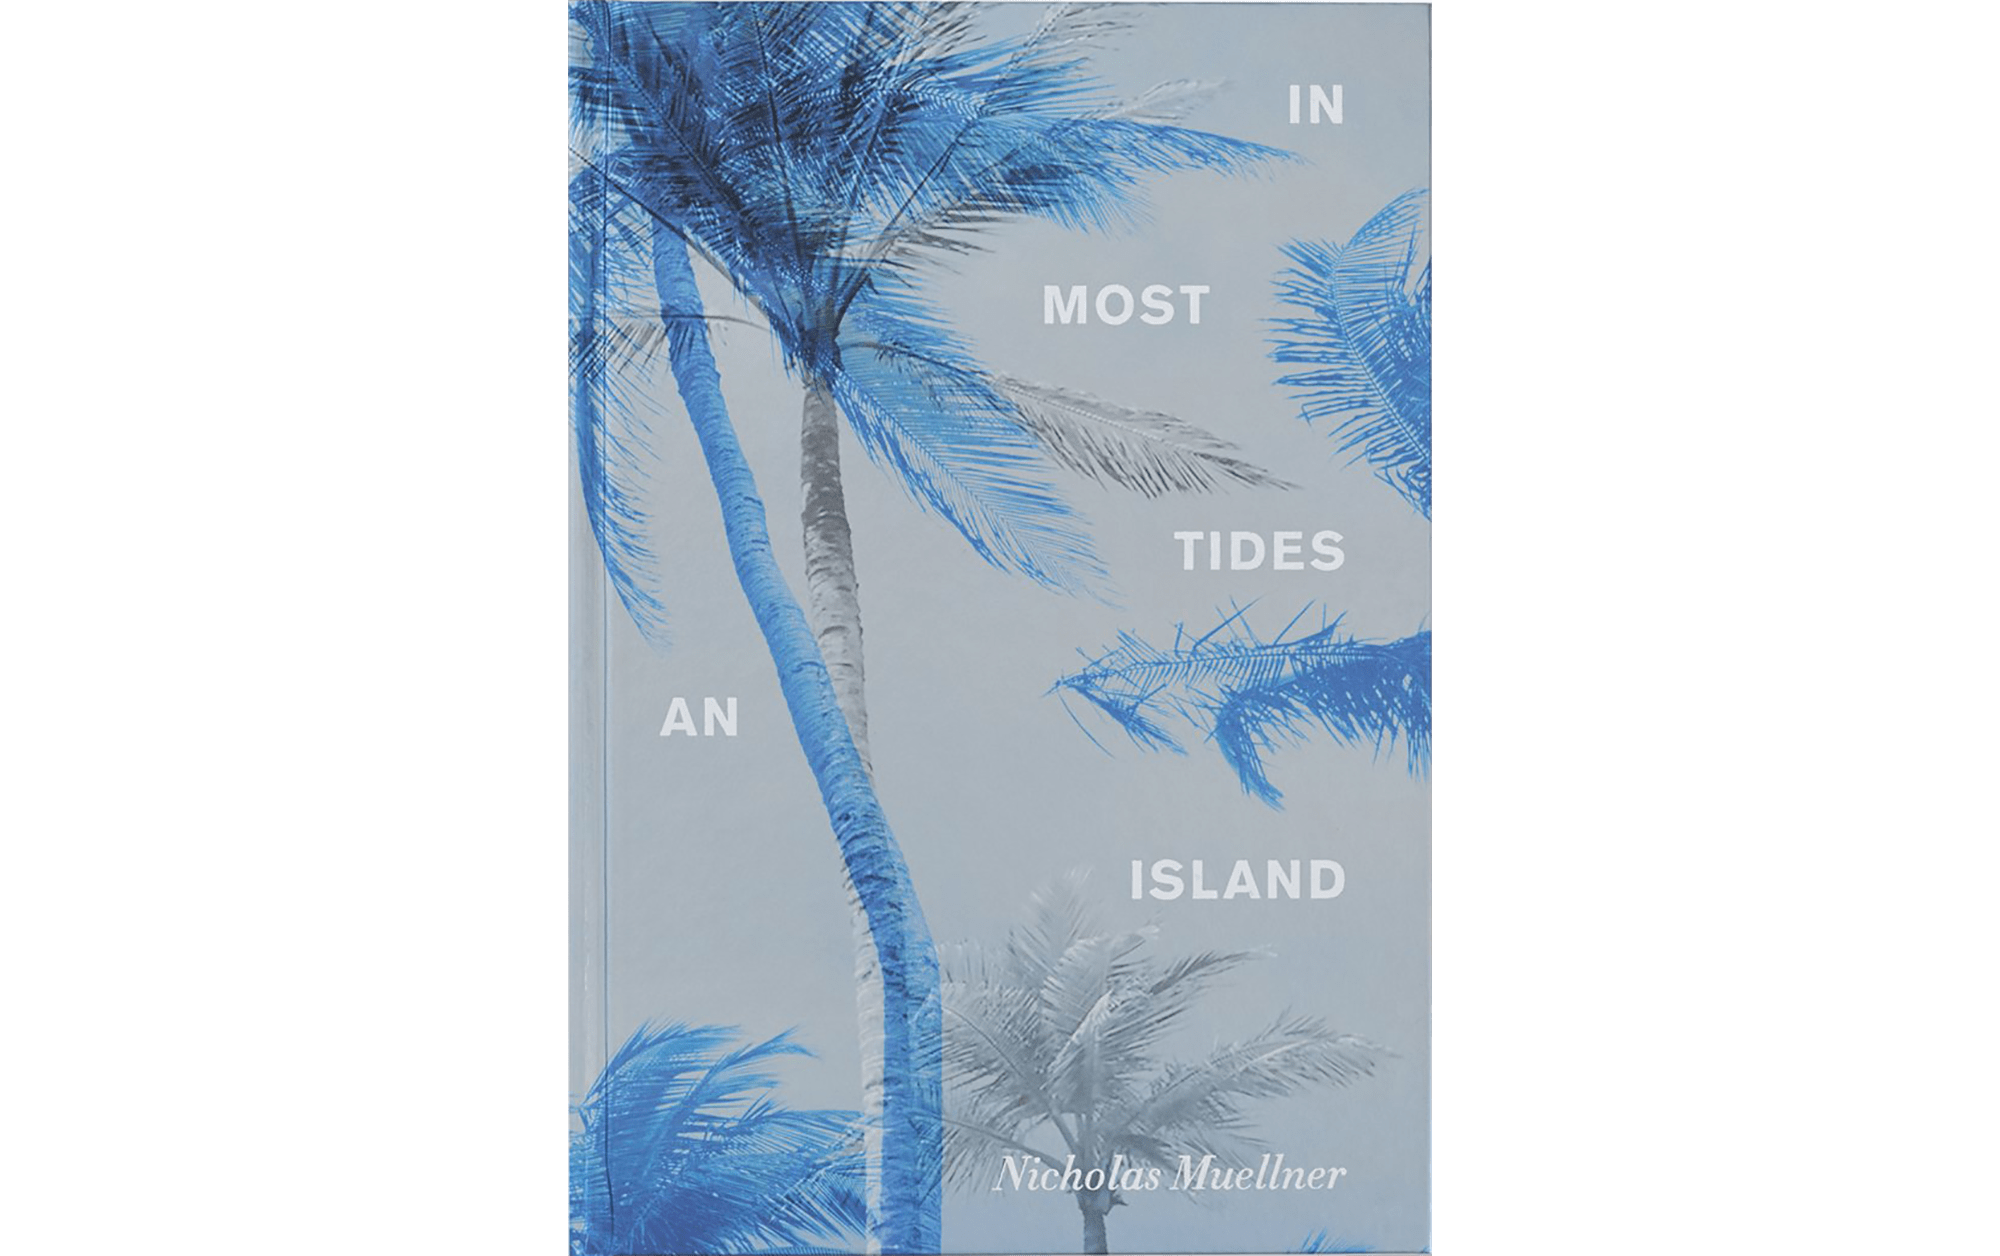 IN MOST TIDES AN ISLAND